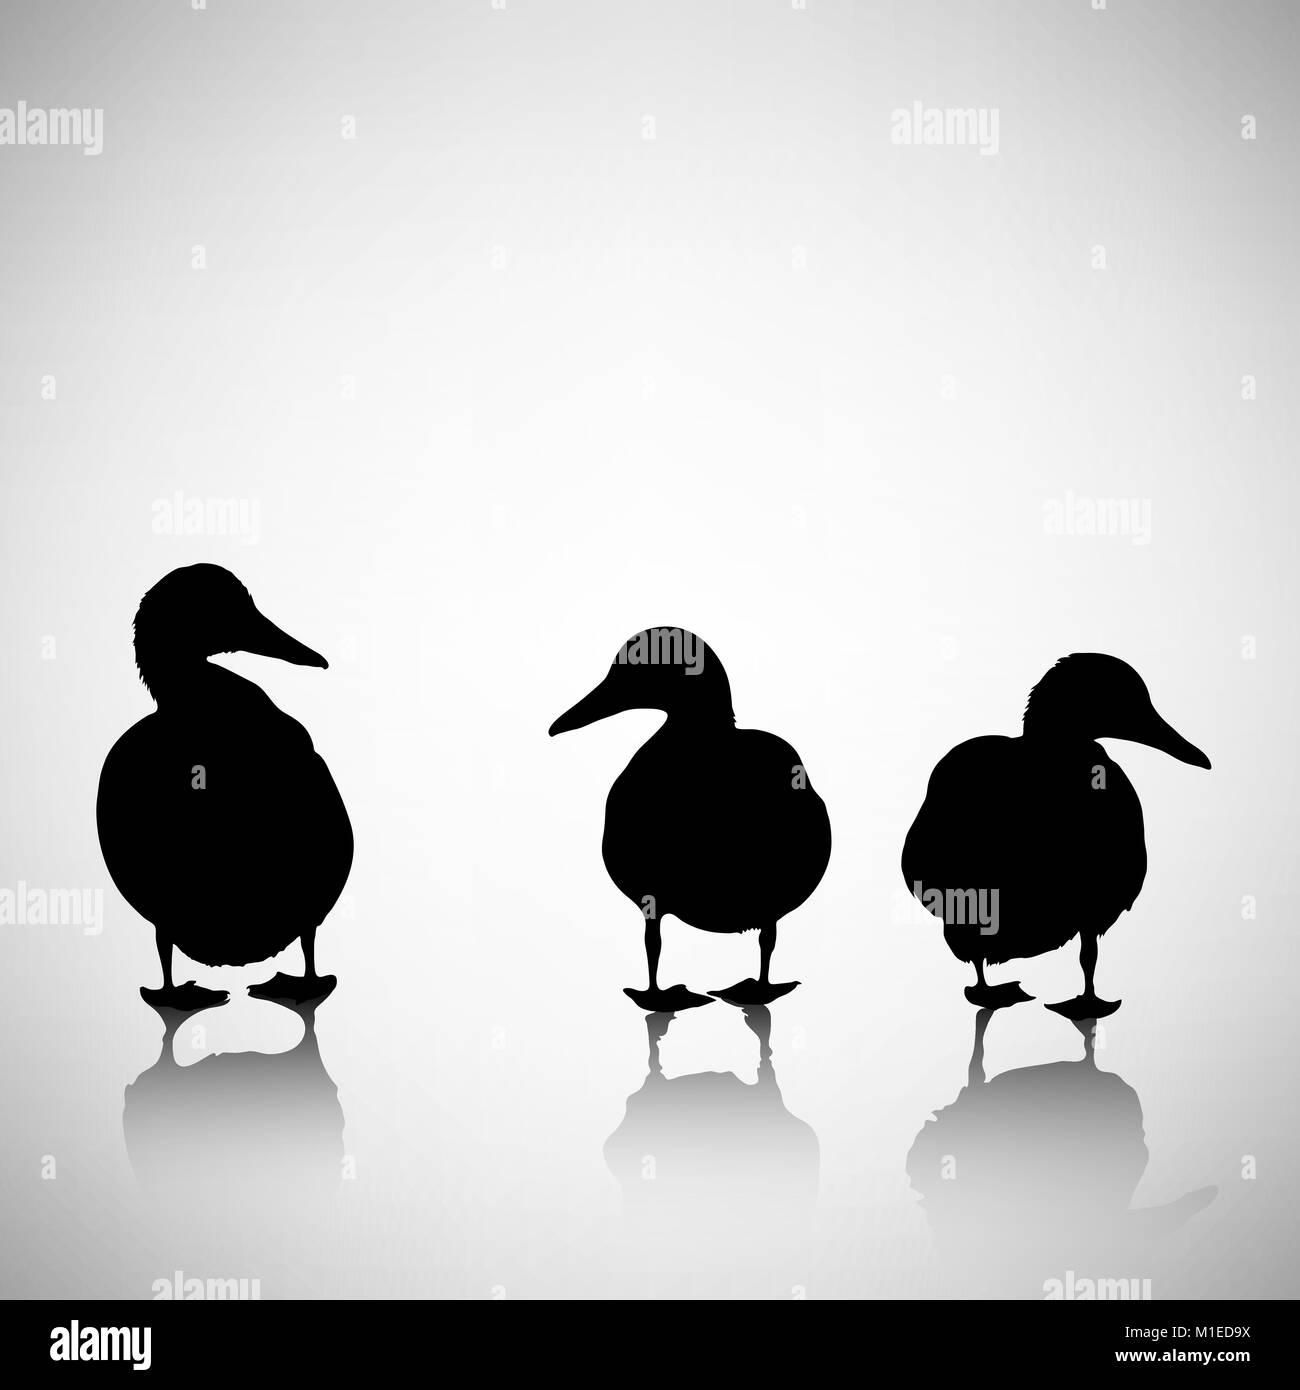 silhouettes of ducks on a light background with reflection - Stock Image